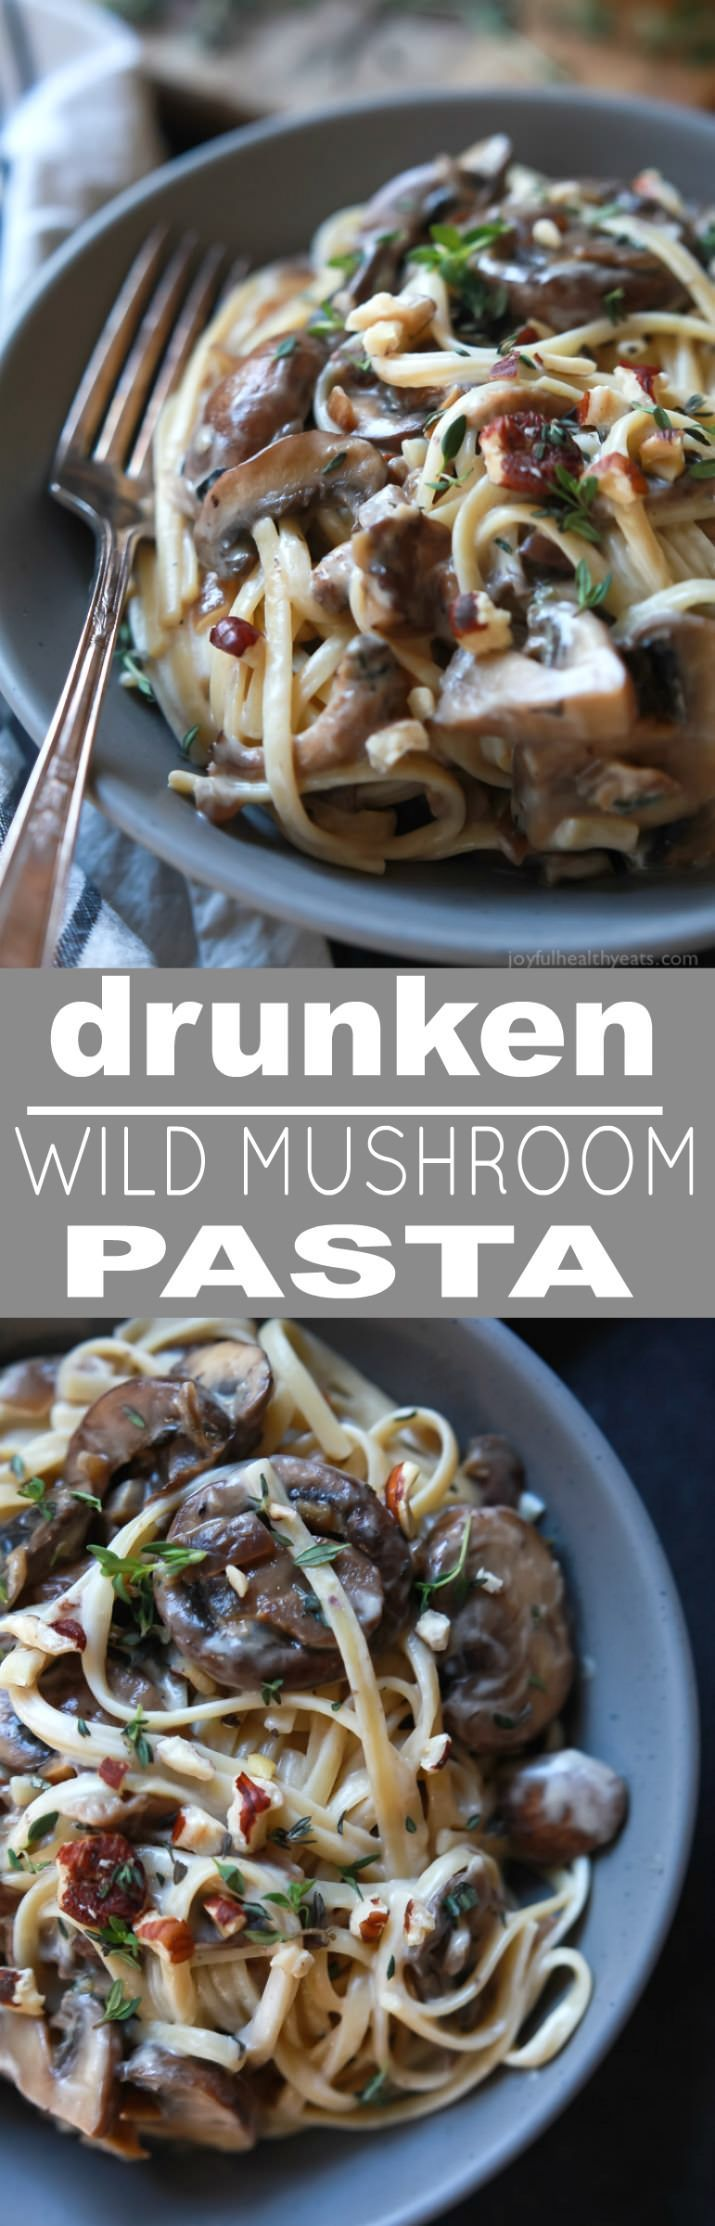 Drunken Wild Mushroom Pasta with a Creamy Goat Cheese Sauce - this recipe is total comfort food! Easy, done in just 30 minutes, only 331 calories, and vegetarian | joyfulhealthyeats.com